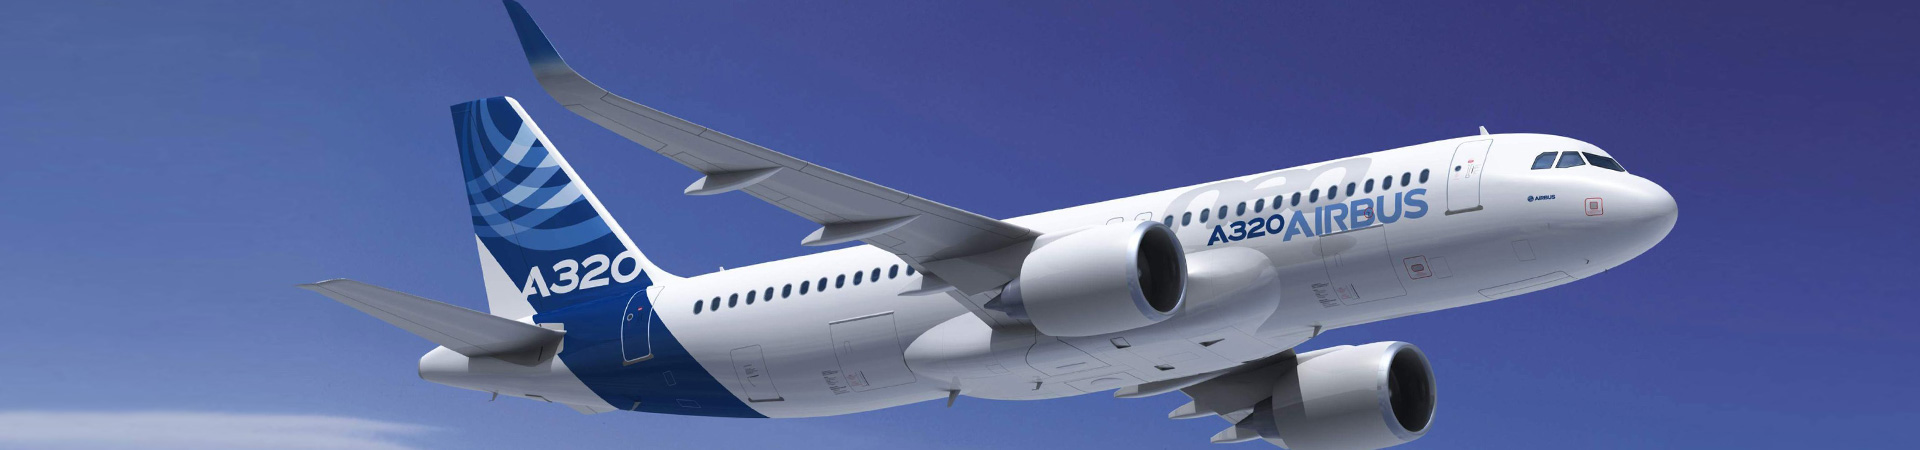 Starr Luxury Jets Large Airliner Private Jet Aircraft Hire